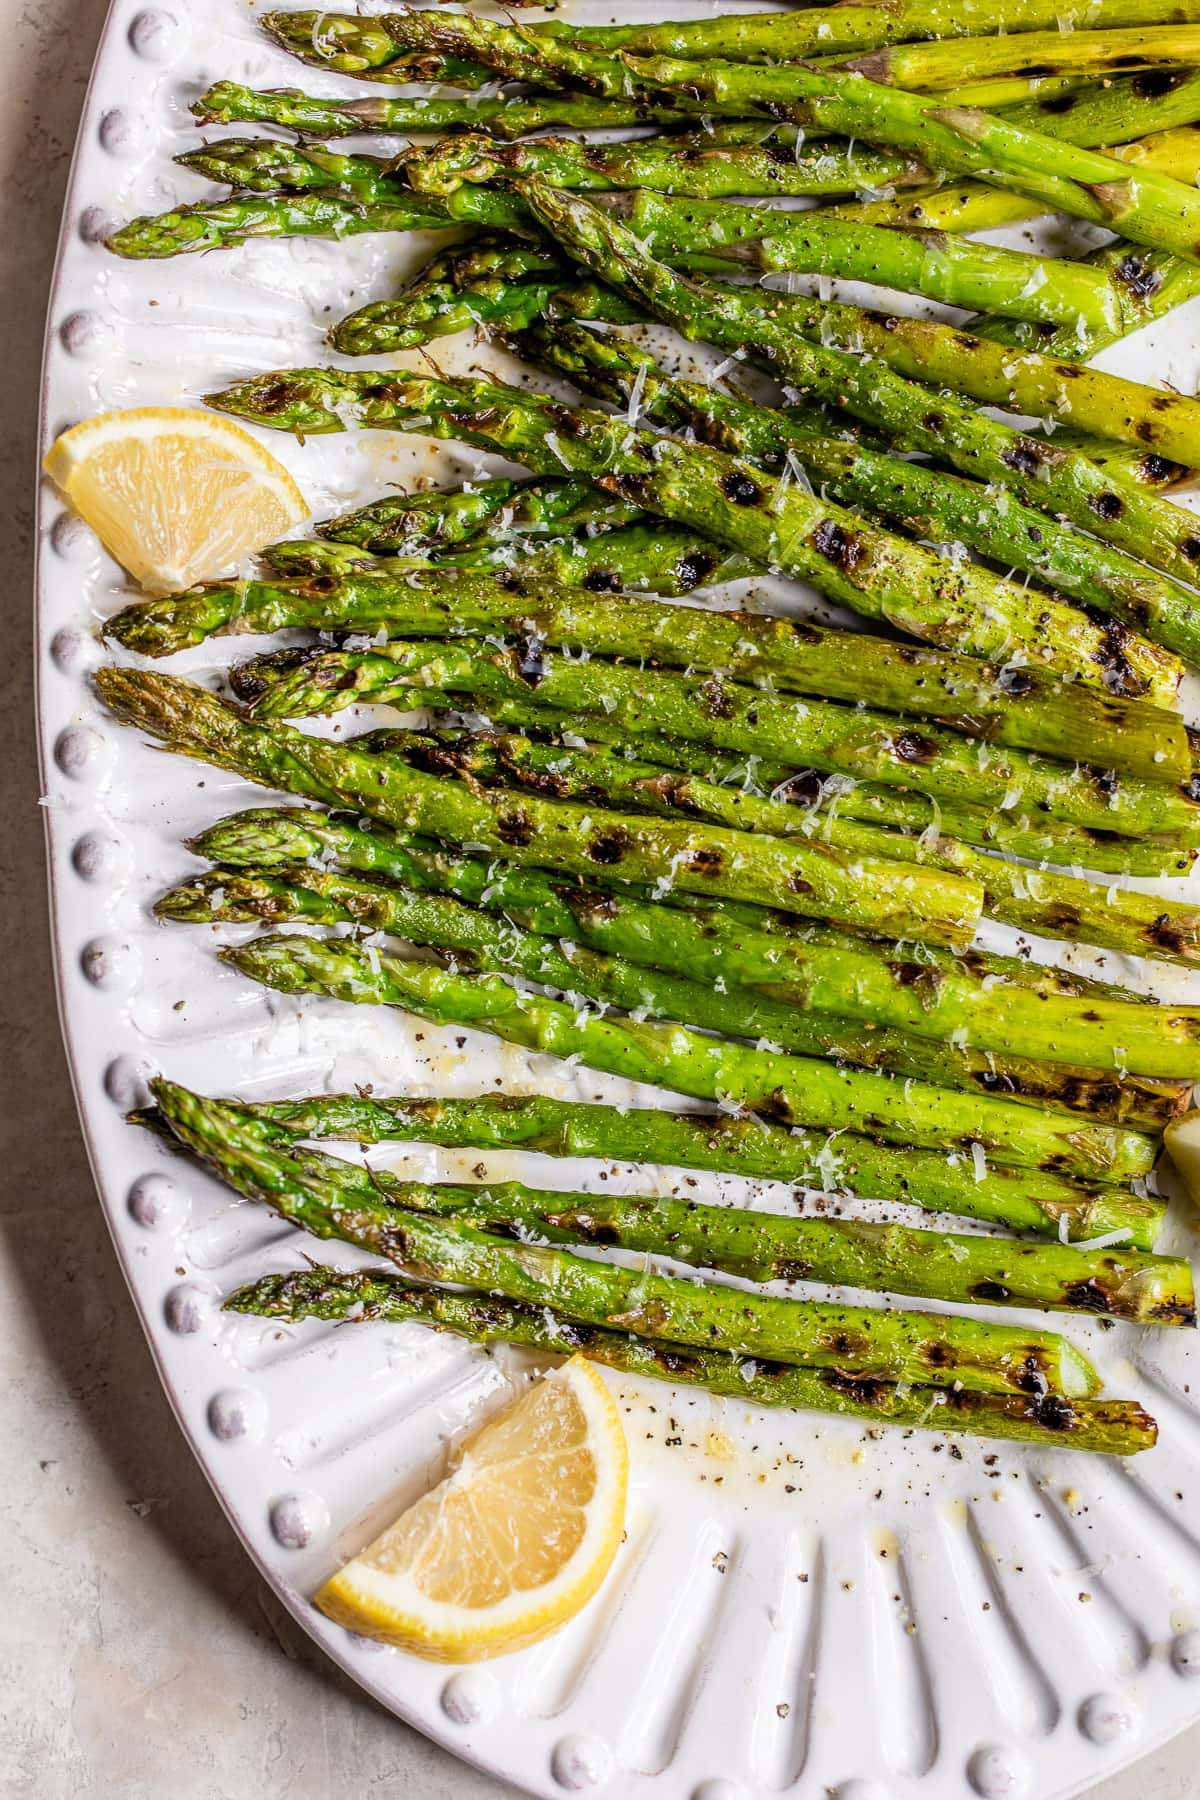 Grilled asparagus with lemon and Parmesan on a plate